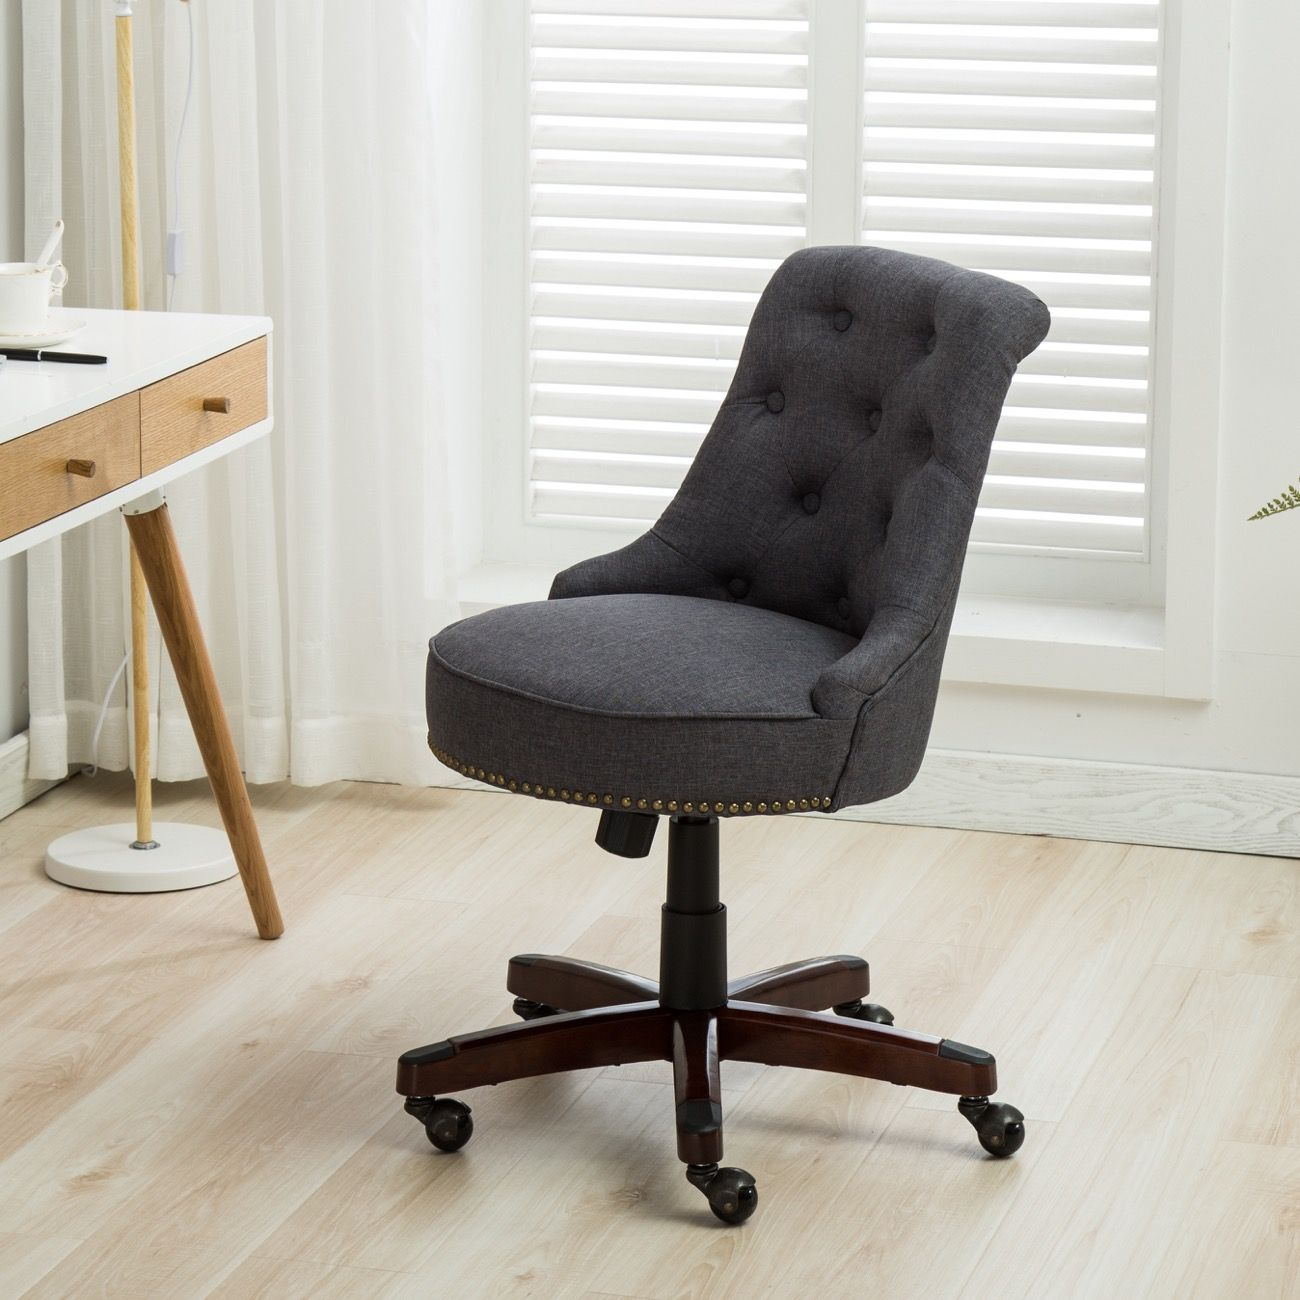 BELLEZE Office Chair Tufted MidBack Height Adjustable